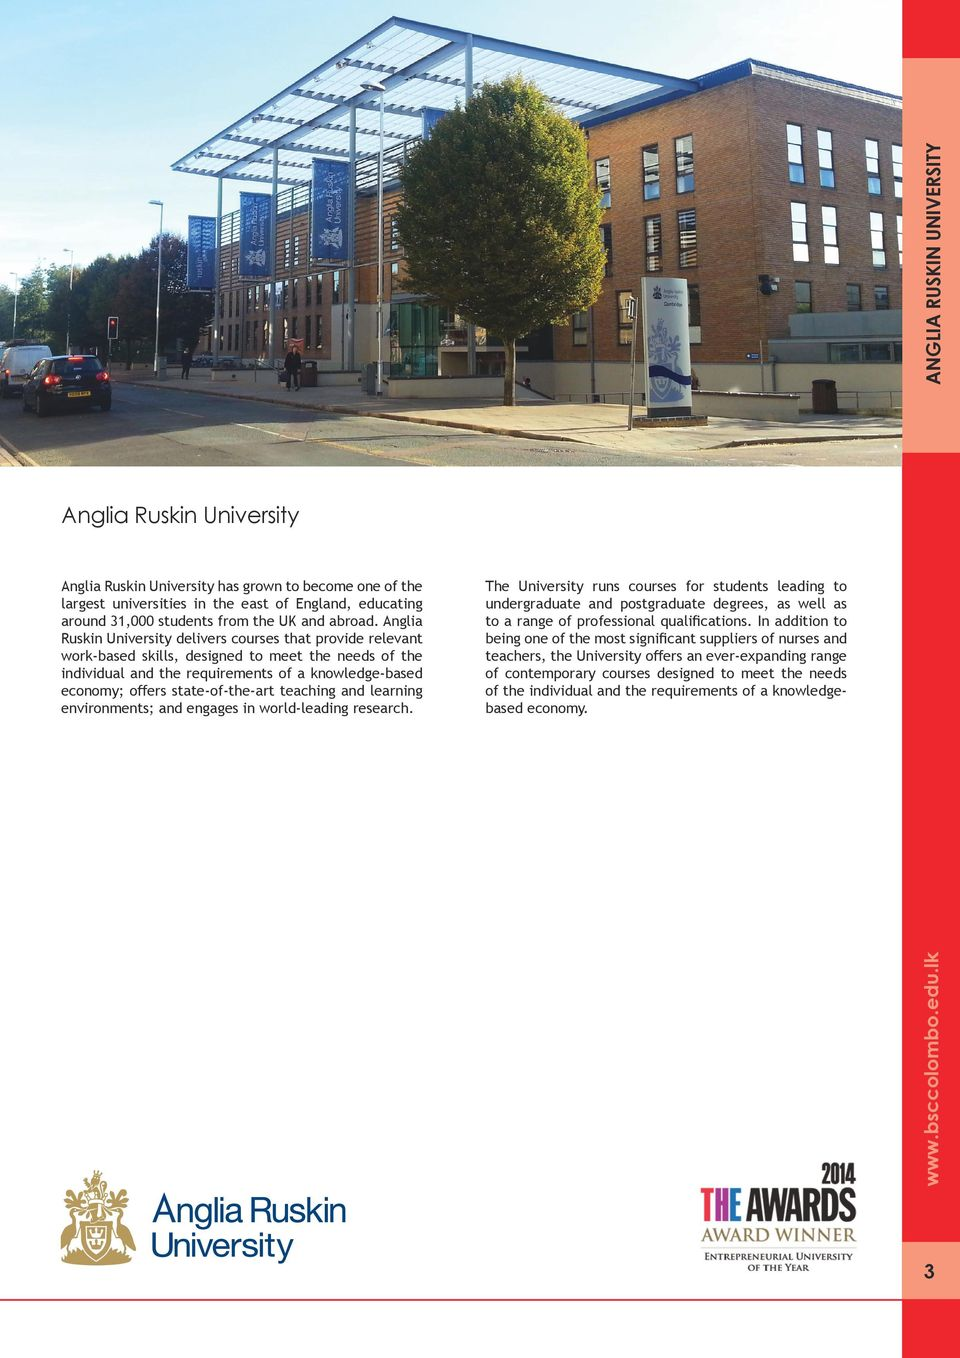 Anglia Ruskin University delivers courses that provide relevant work-based skills, designed to meet the needs of the individual and the requirements of a knowledge-based economy; offers